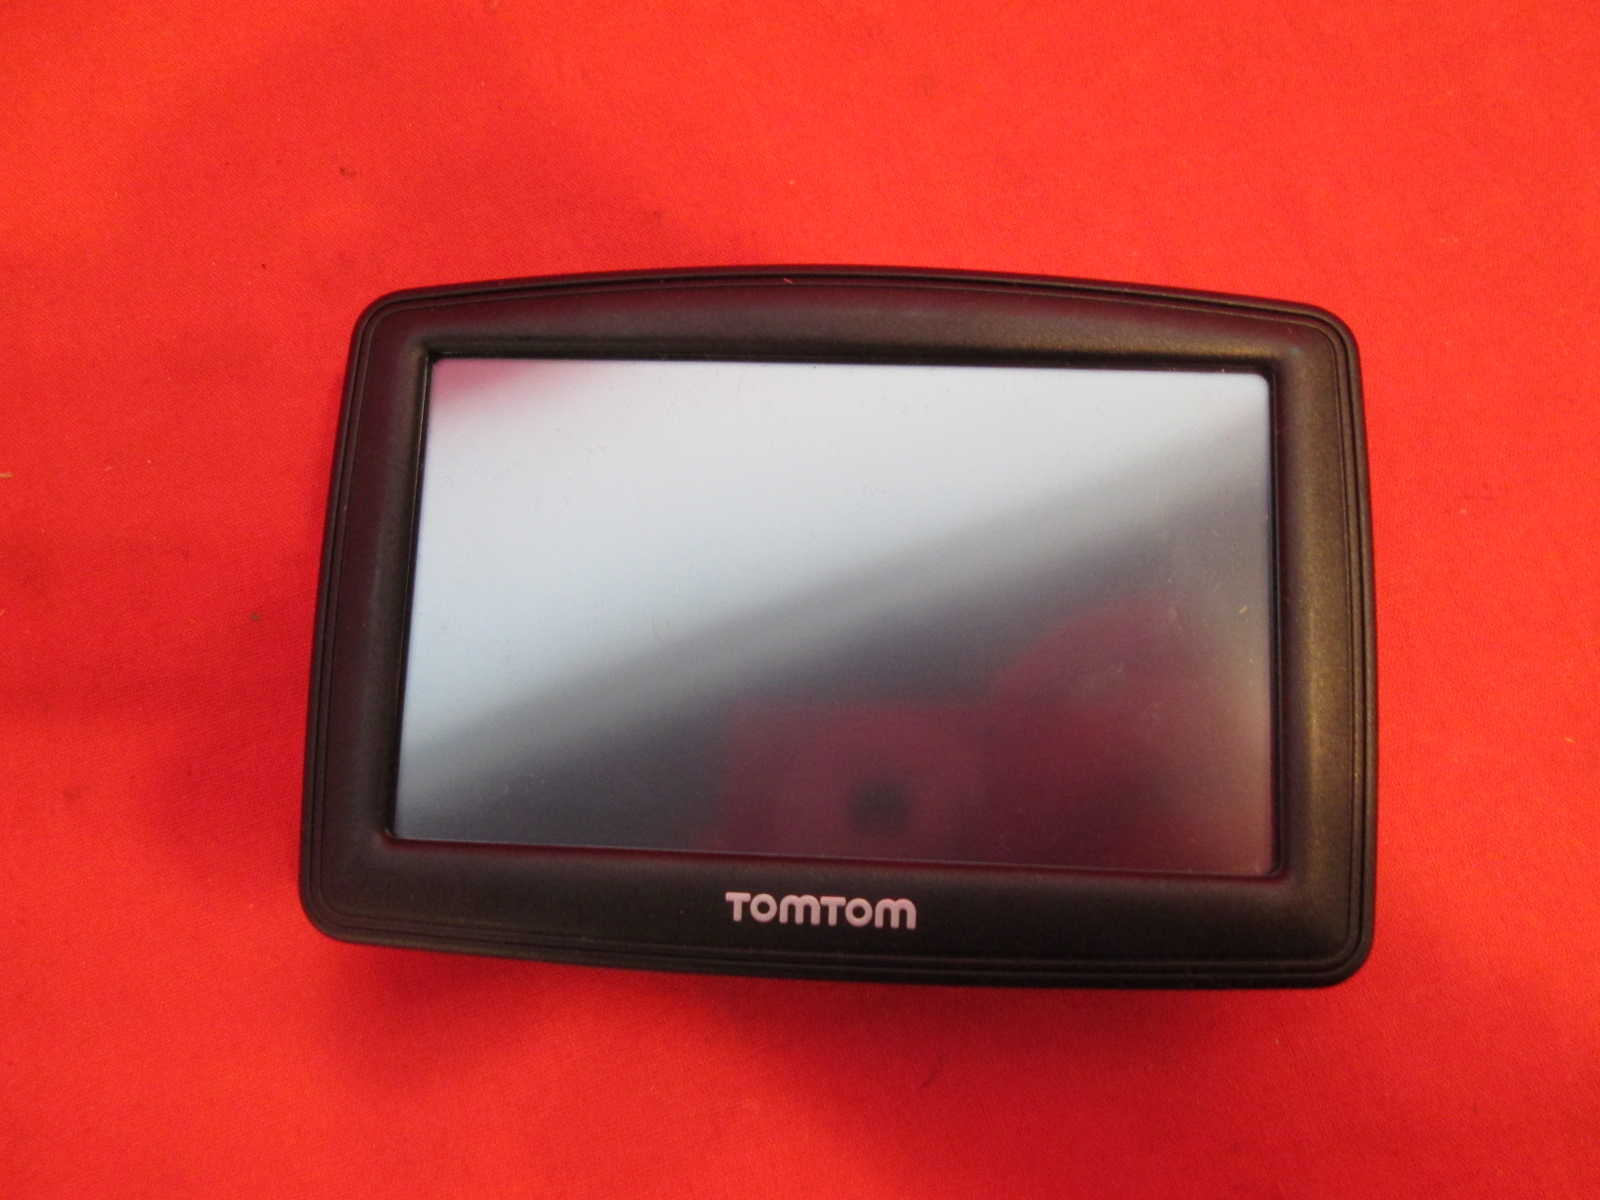 broken tomtom gps xl 4et03. Black Bedroom Furniture Sets. Home Design Ideas